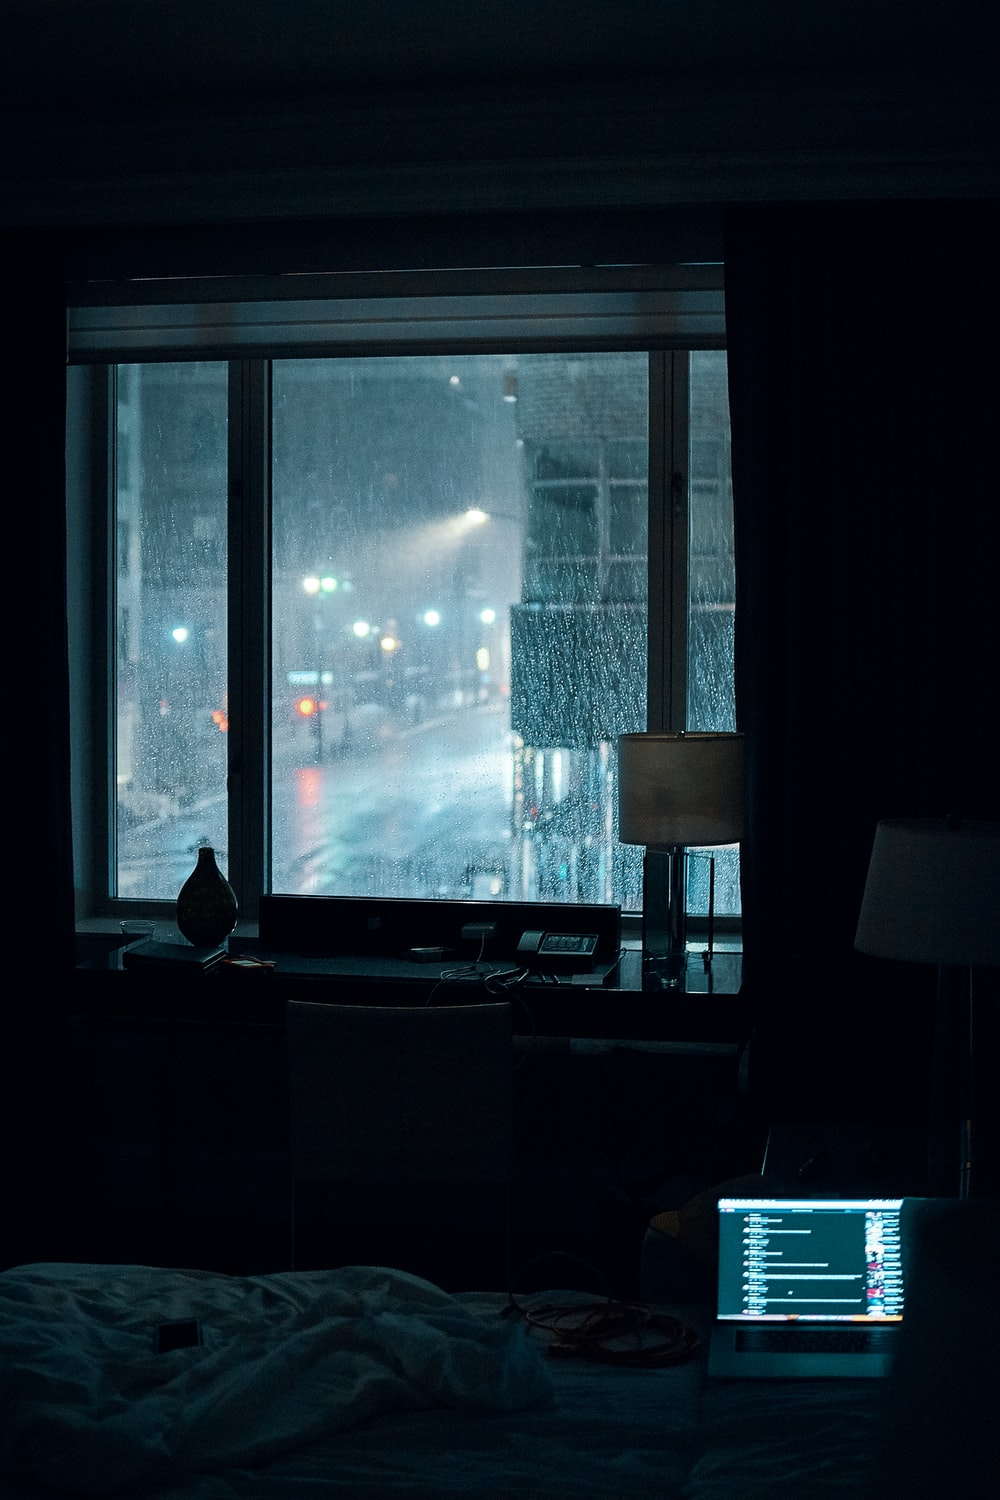 laptop computer left turned-on on bed inside room during rainy night